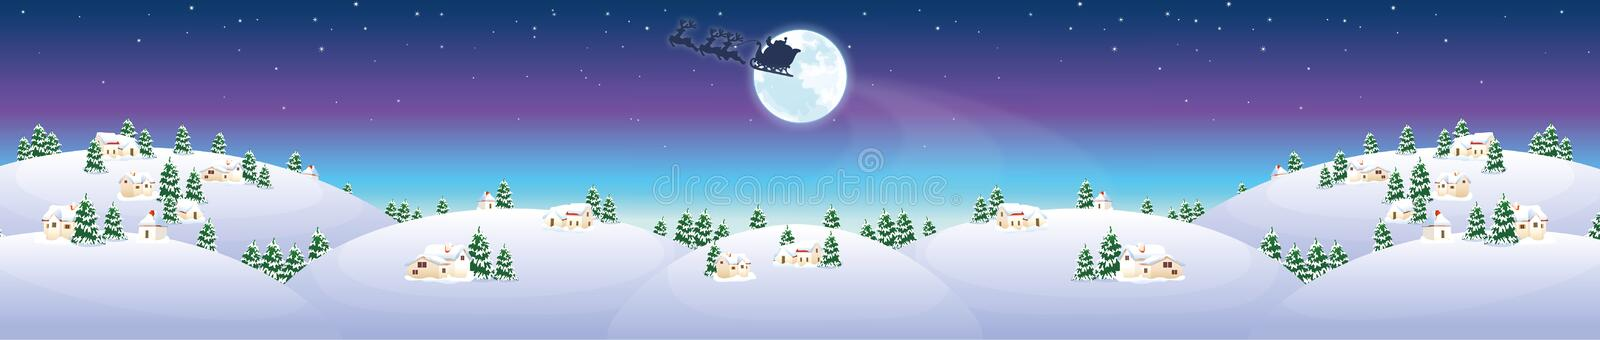 Winter landscape with houses and Santa Claus royalty free stock image